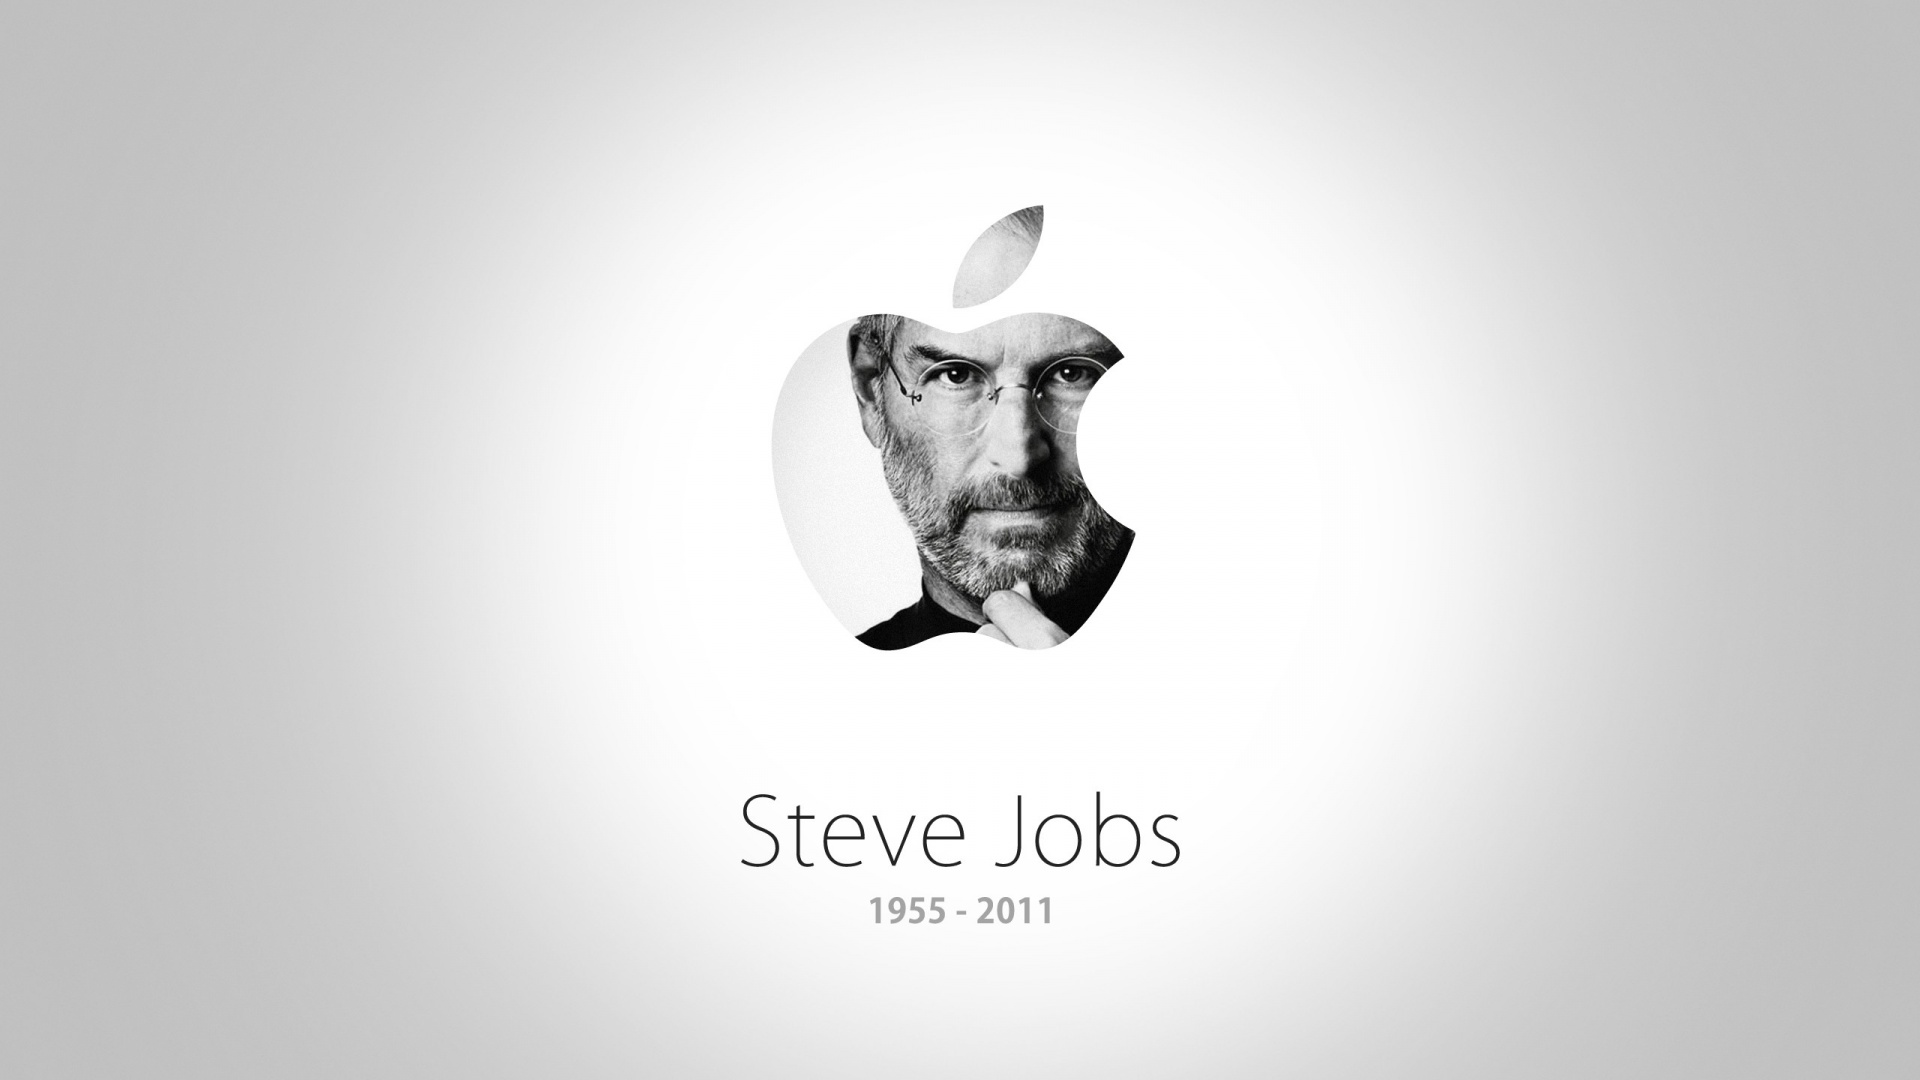 Steve Jobs Apple Logo Wallpaper 79302 | WEBNODE